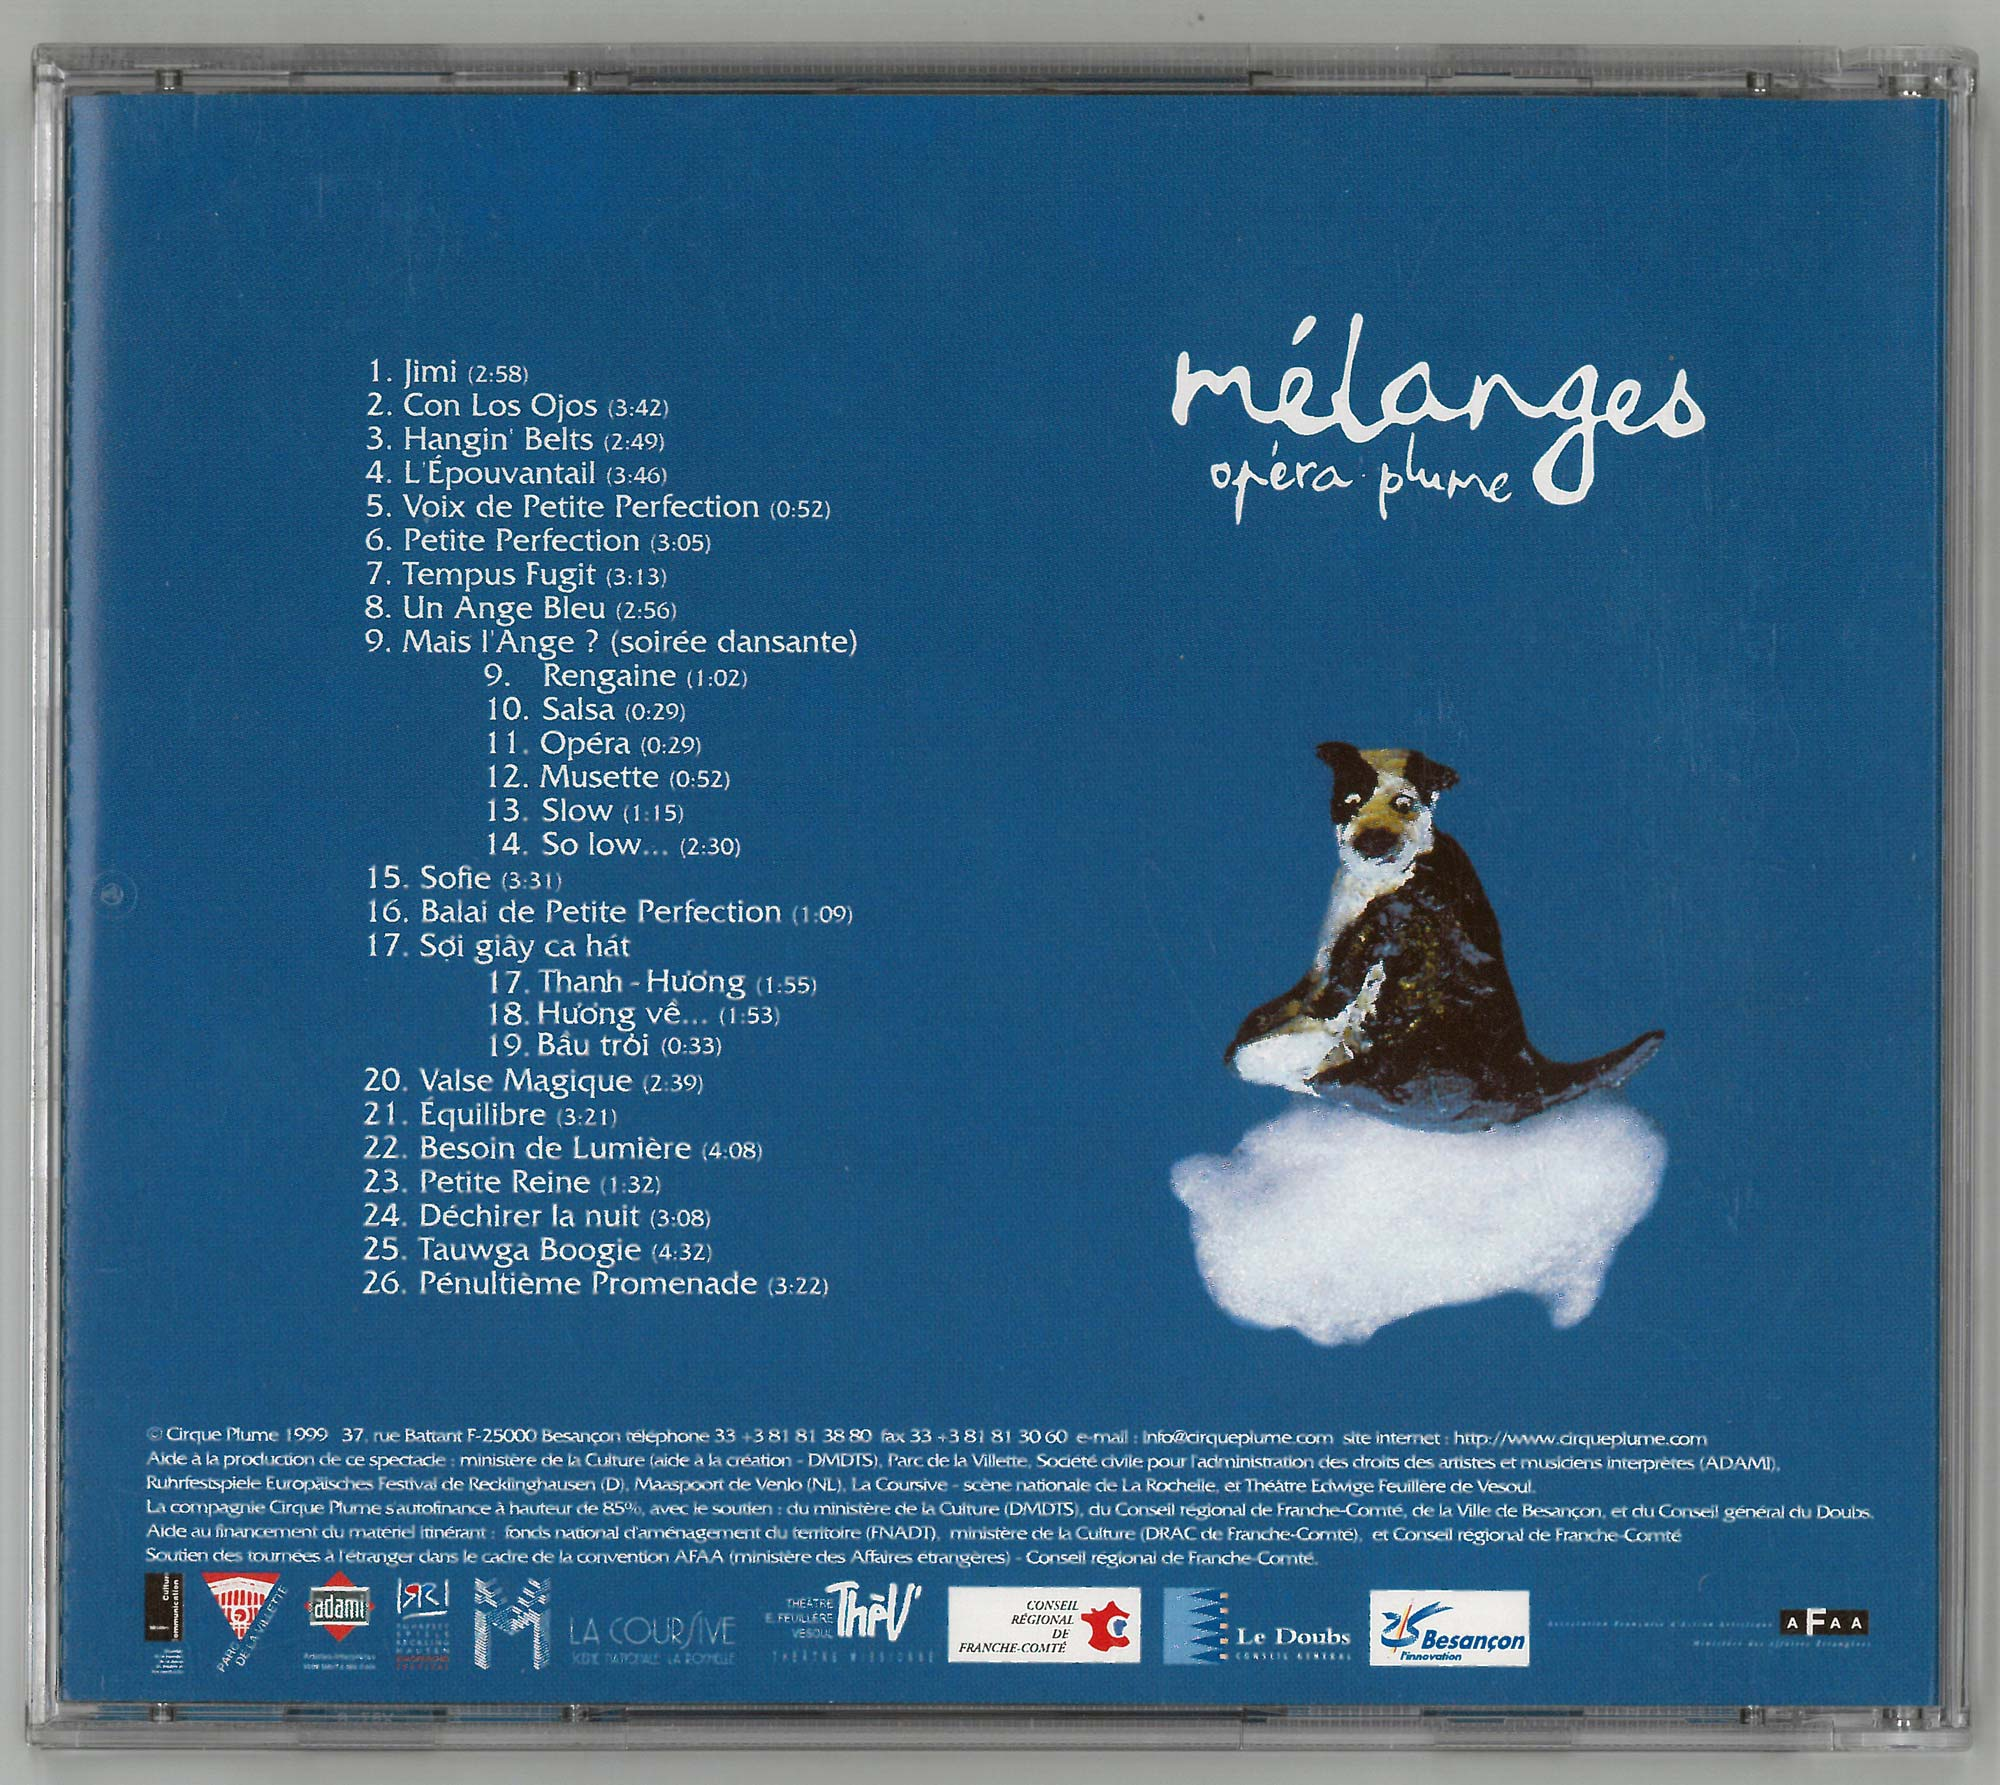 Back cover CD Mélanges (opéra plume)